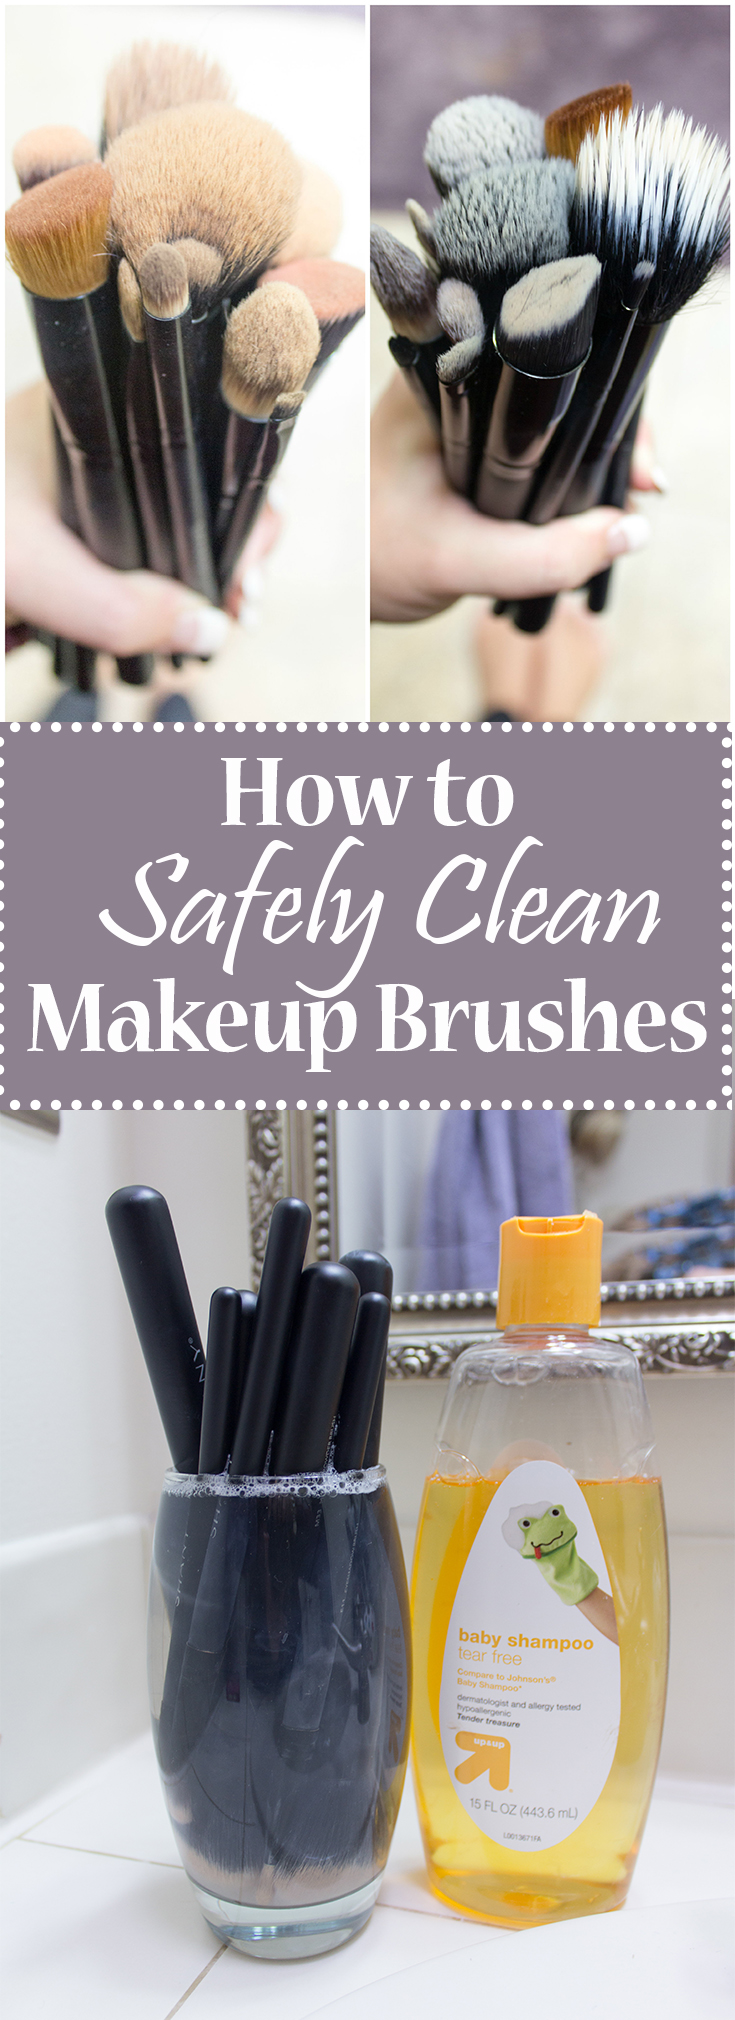 This guide walks you through step by step how to wash and clean your makeup brushes safely at home with baby shampoo